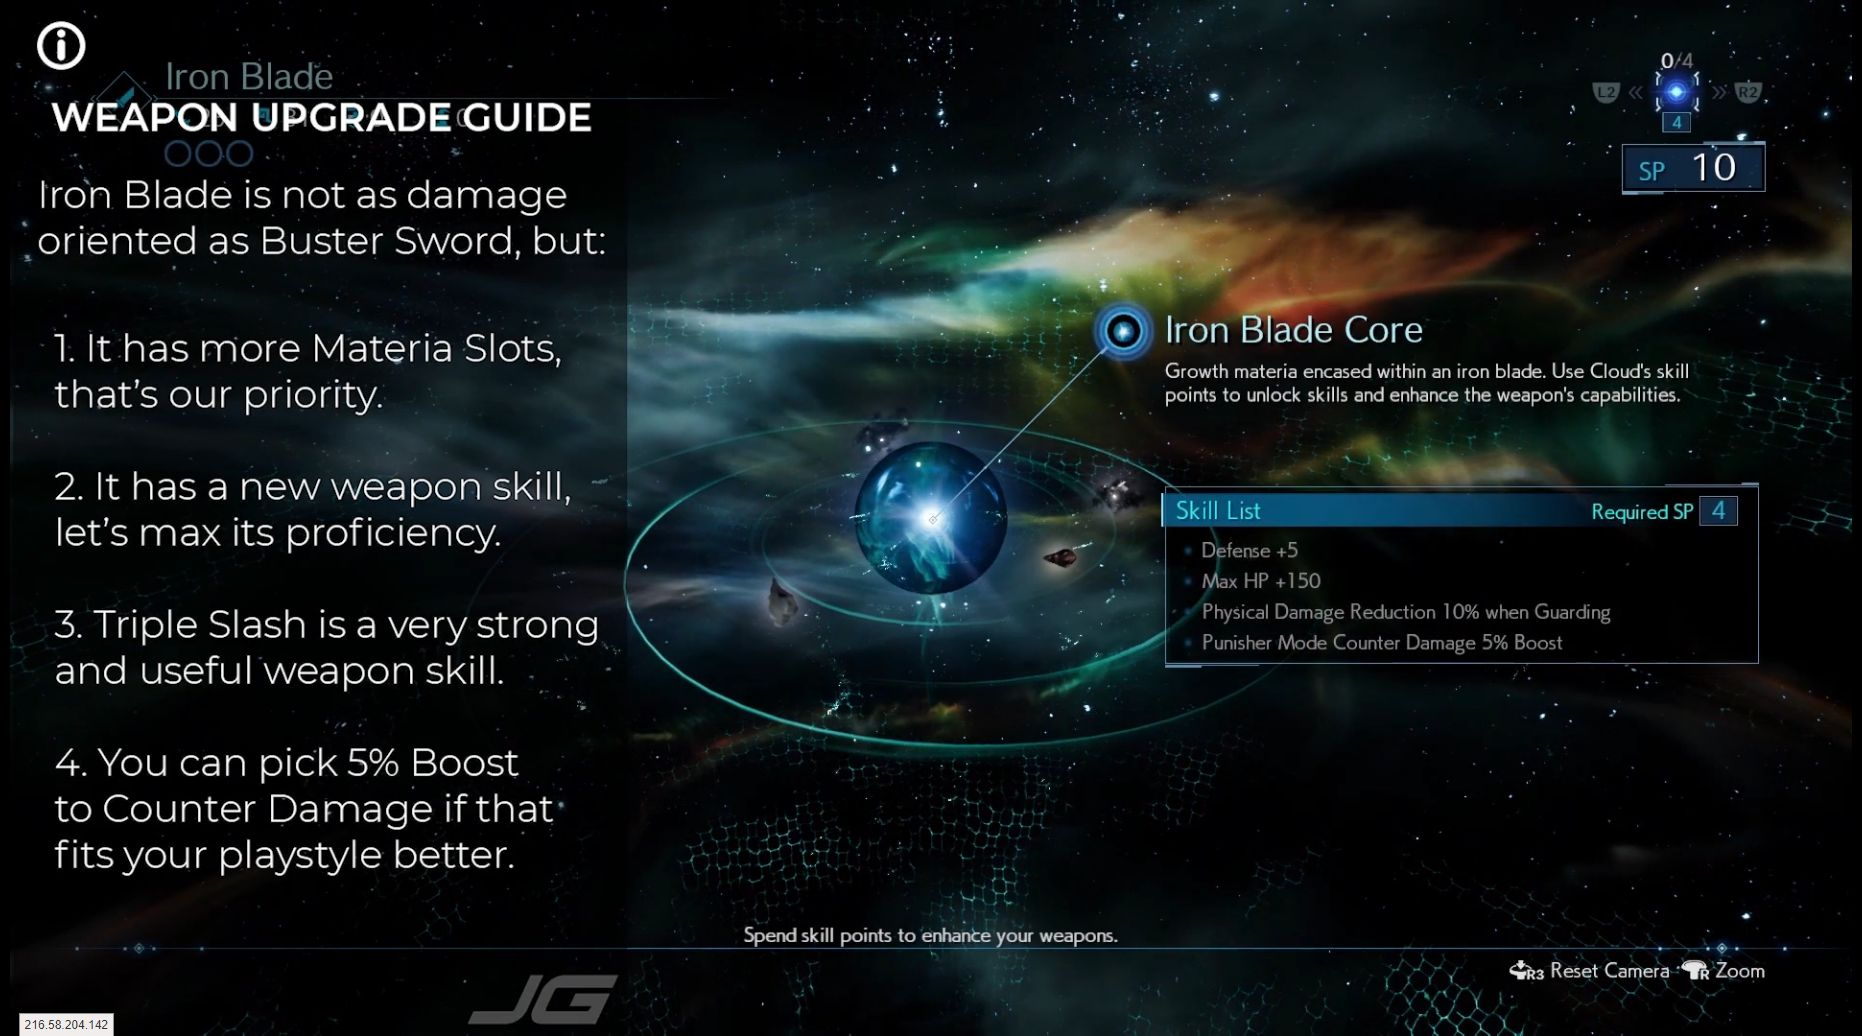 Weapon upgrade guide for Cloud - Iron Blade is not as damage oriented as Buster Sword but 1 It has more Materia slots, our priority 2 It has a new weapon skill, we need to max its proficiency 3 It is a very strong and useful weapon skill 4 Here you can pick 5percent Boost to Counter Damage if you prefer